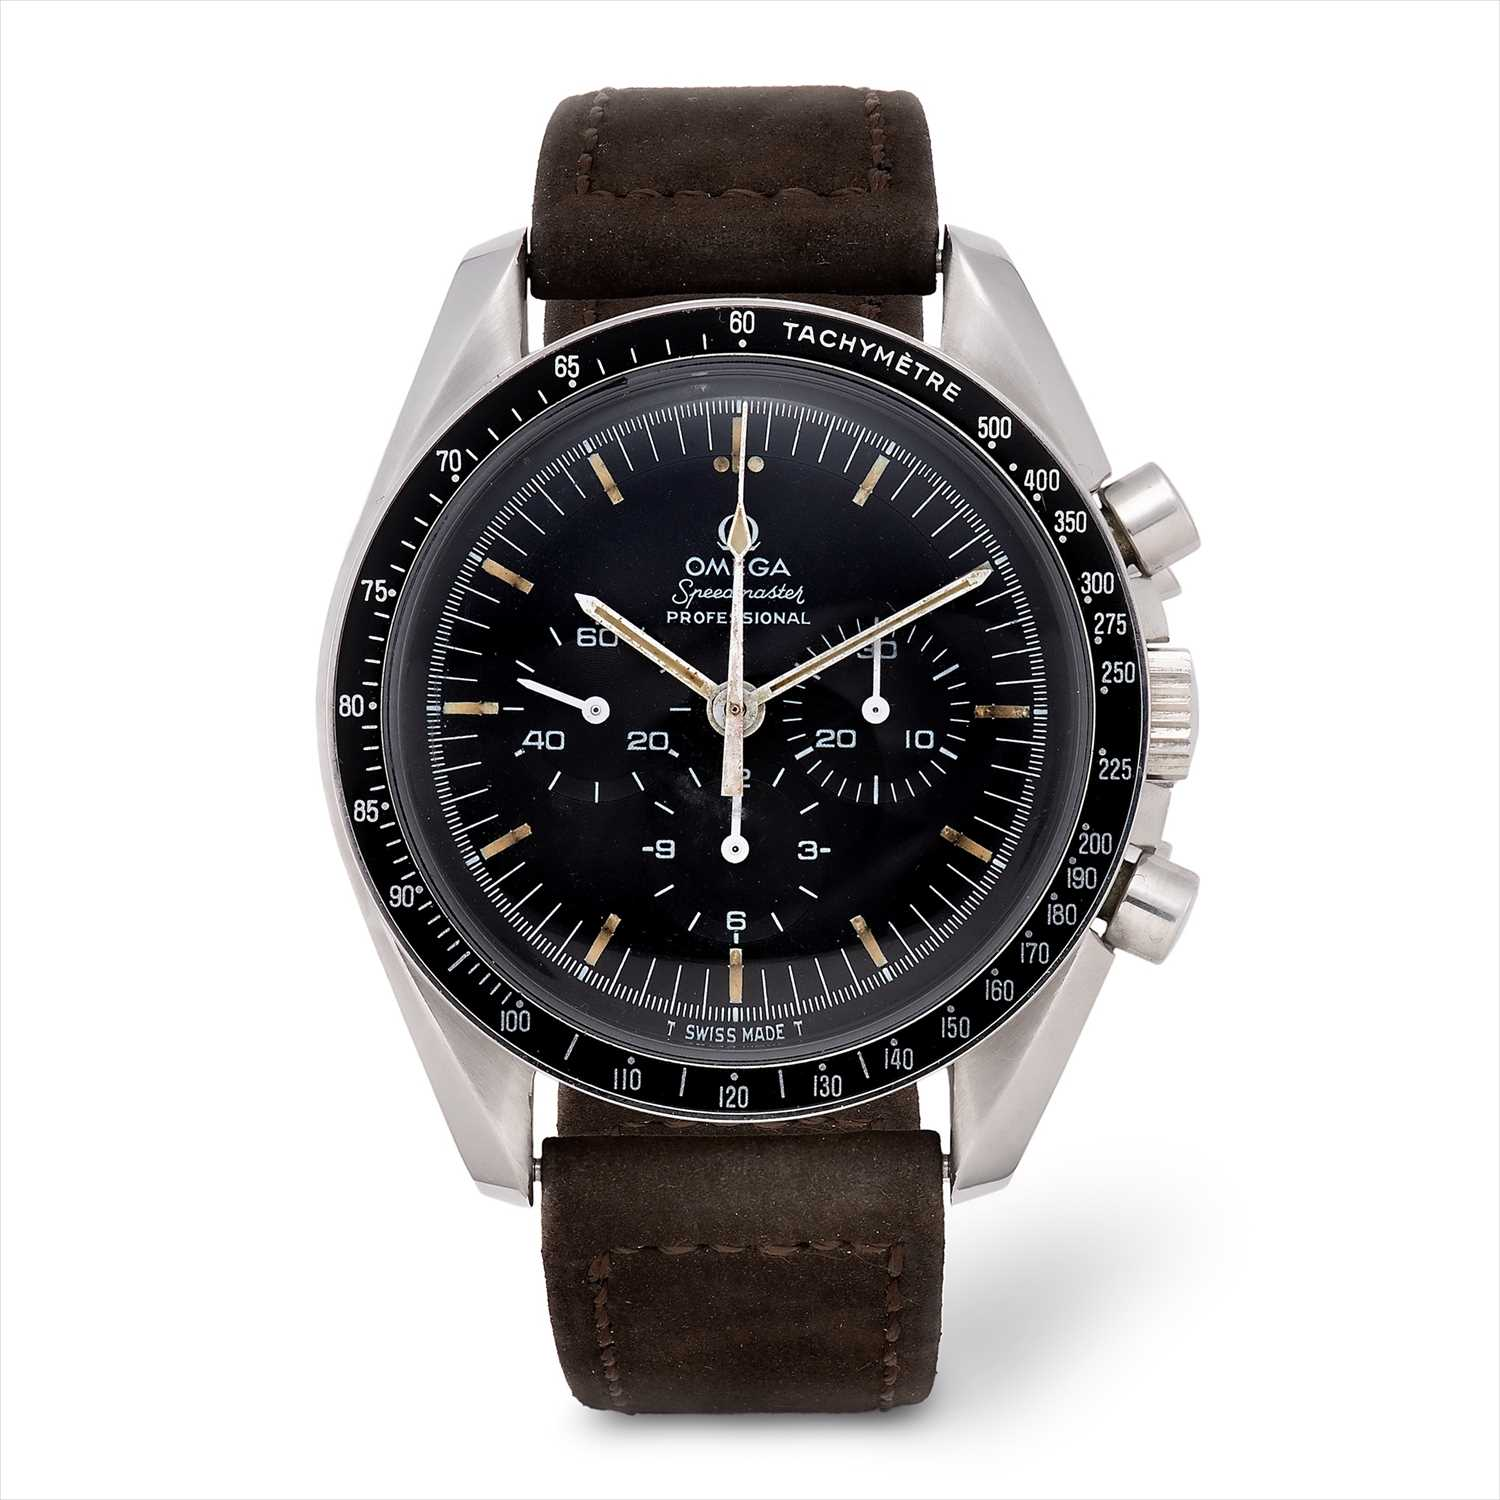 Lot 5-Omega - a 1970s stainless steel Speedmaster Professional chronograph manual wind wrist watch.